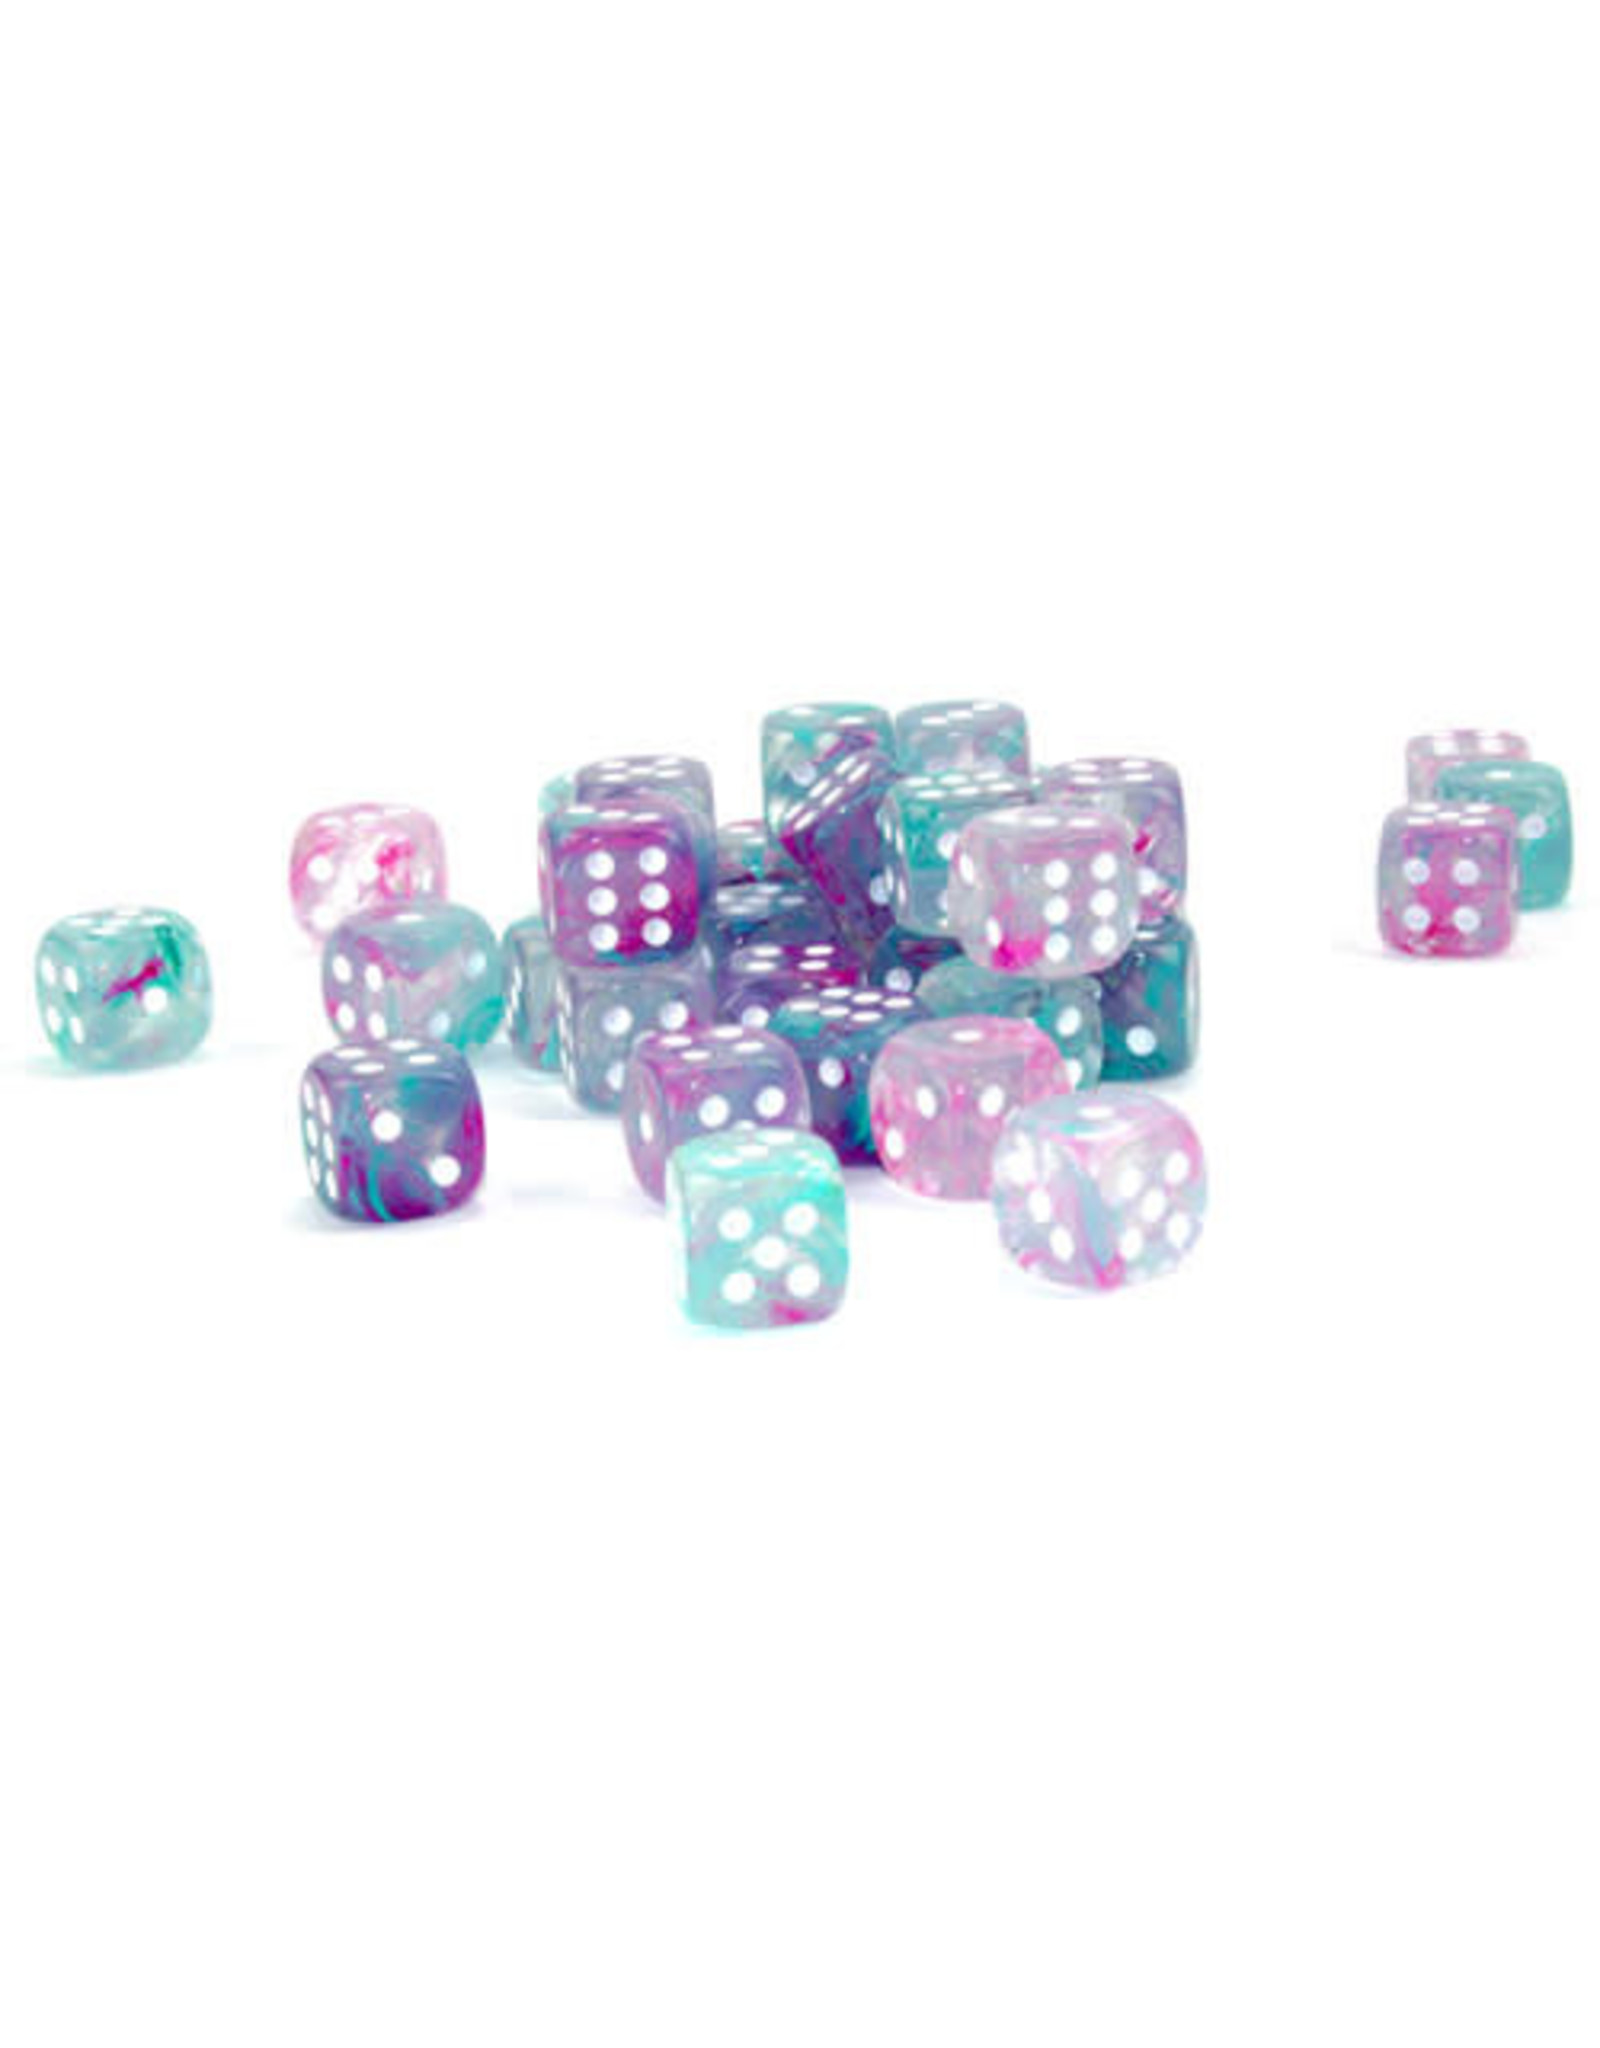 Chessex d6Cube 12mm Luminary NB Wisteria wh (36)